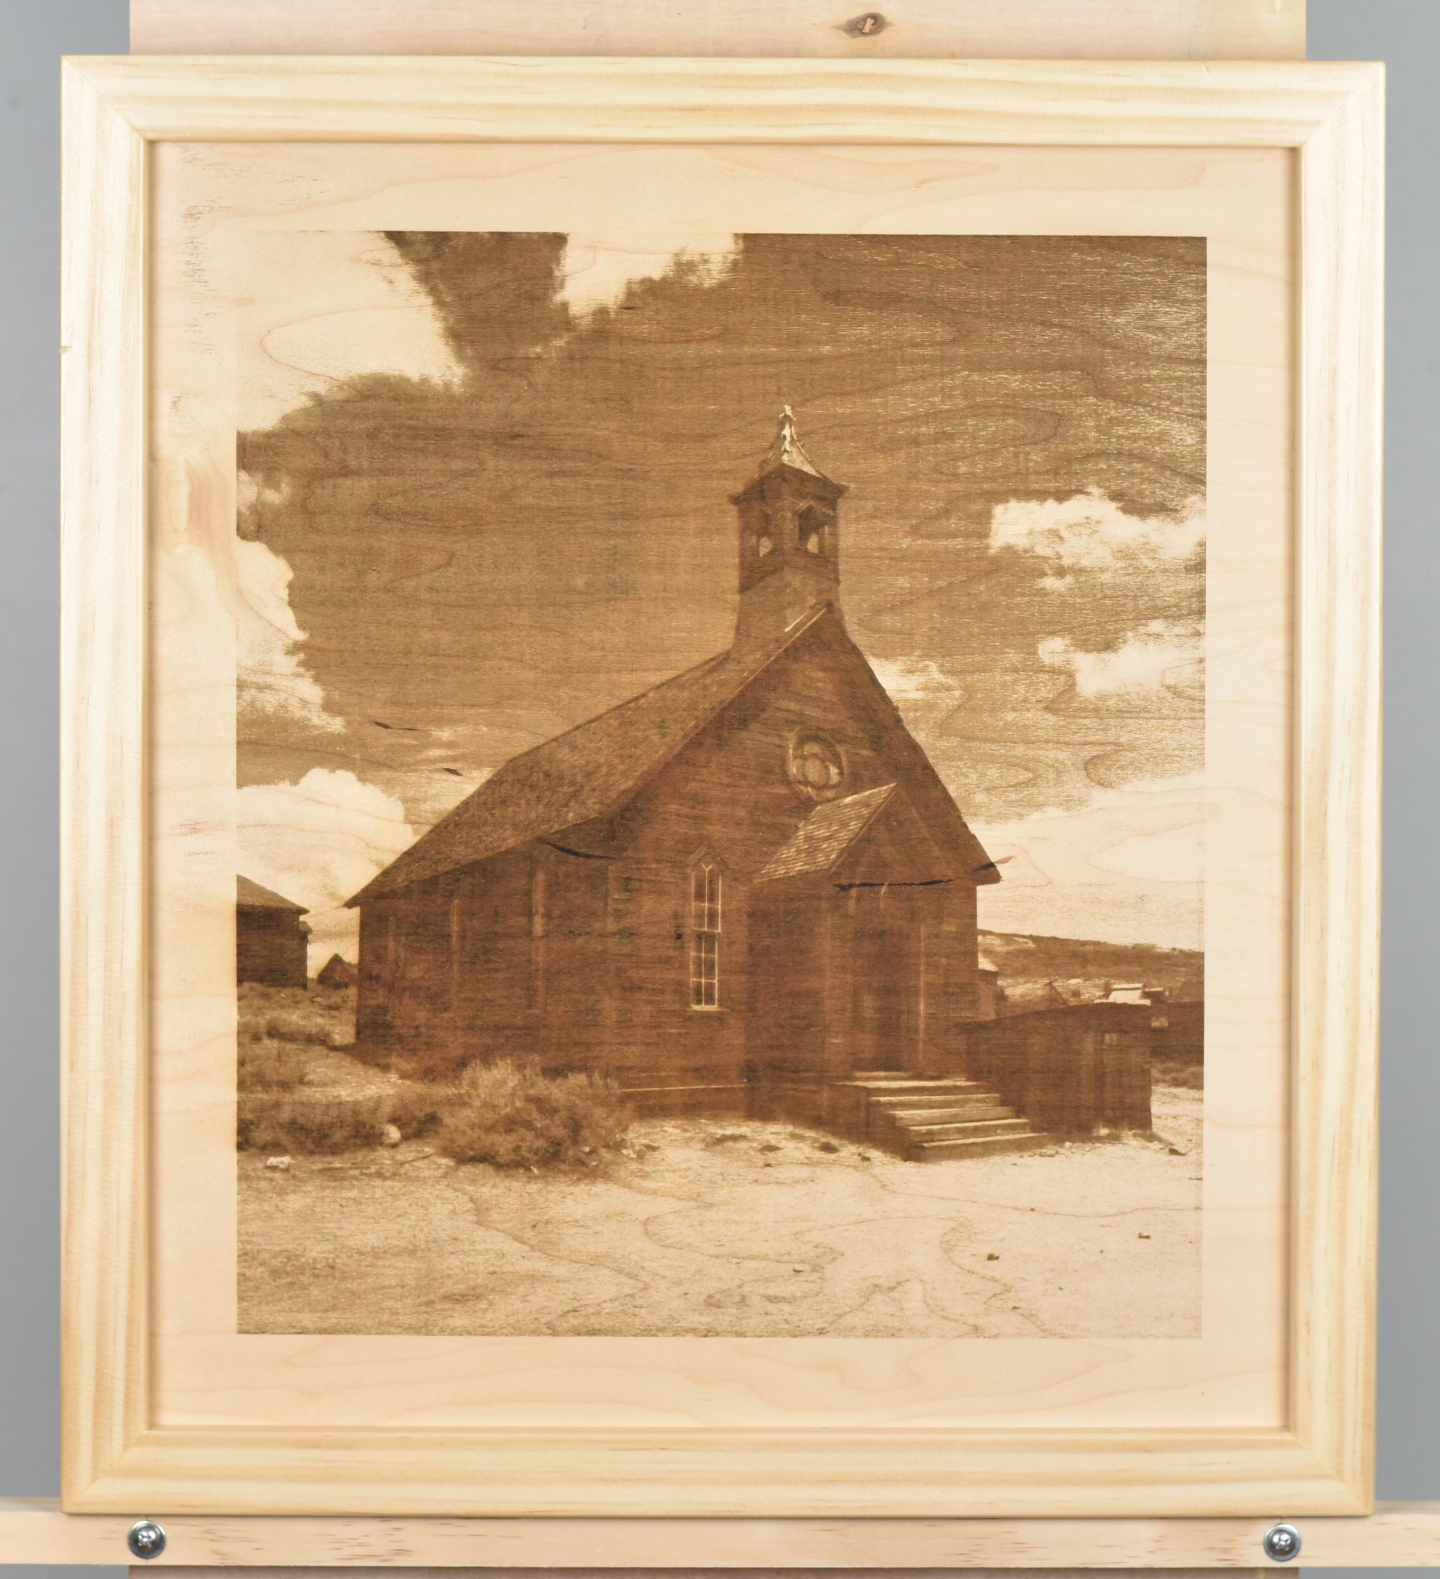 A wood burning (digital pyrograph) of an old wooden methodist church in Bodie California. It submits placidly to the relentless high-desert sunshine. Photograph by Carol Highsmith.